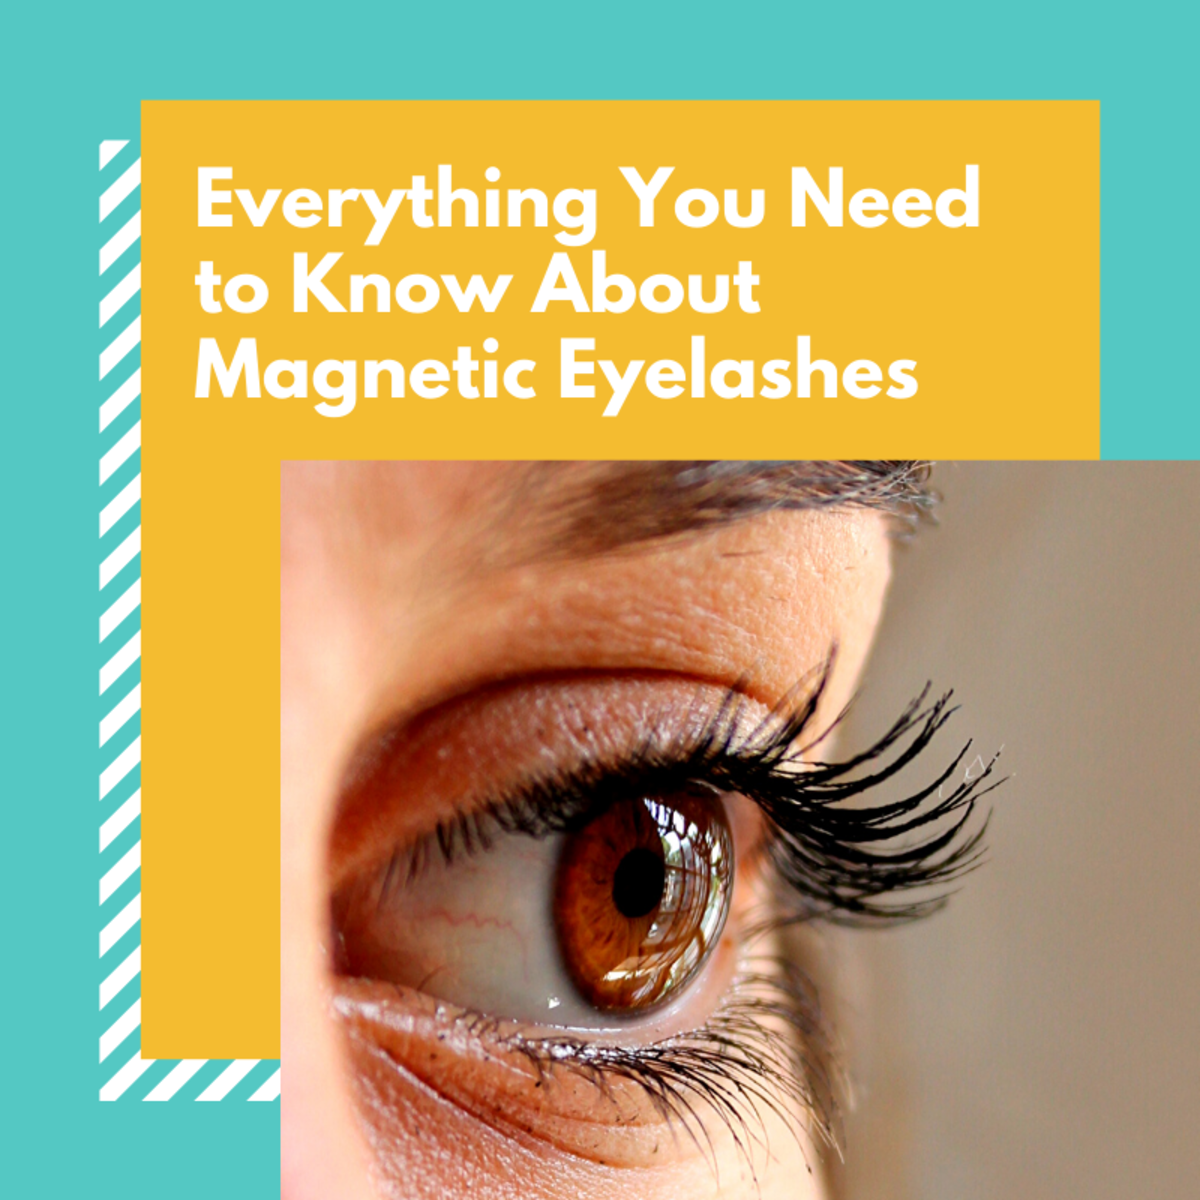 Magnetic Eyelashes: Beautiful in Theory and Practice